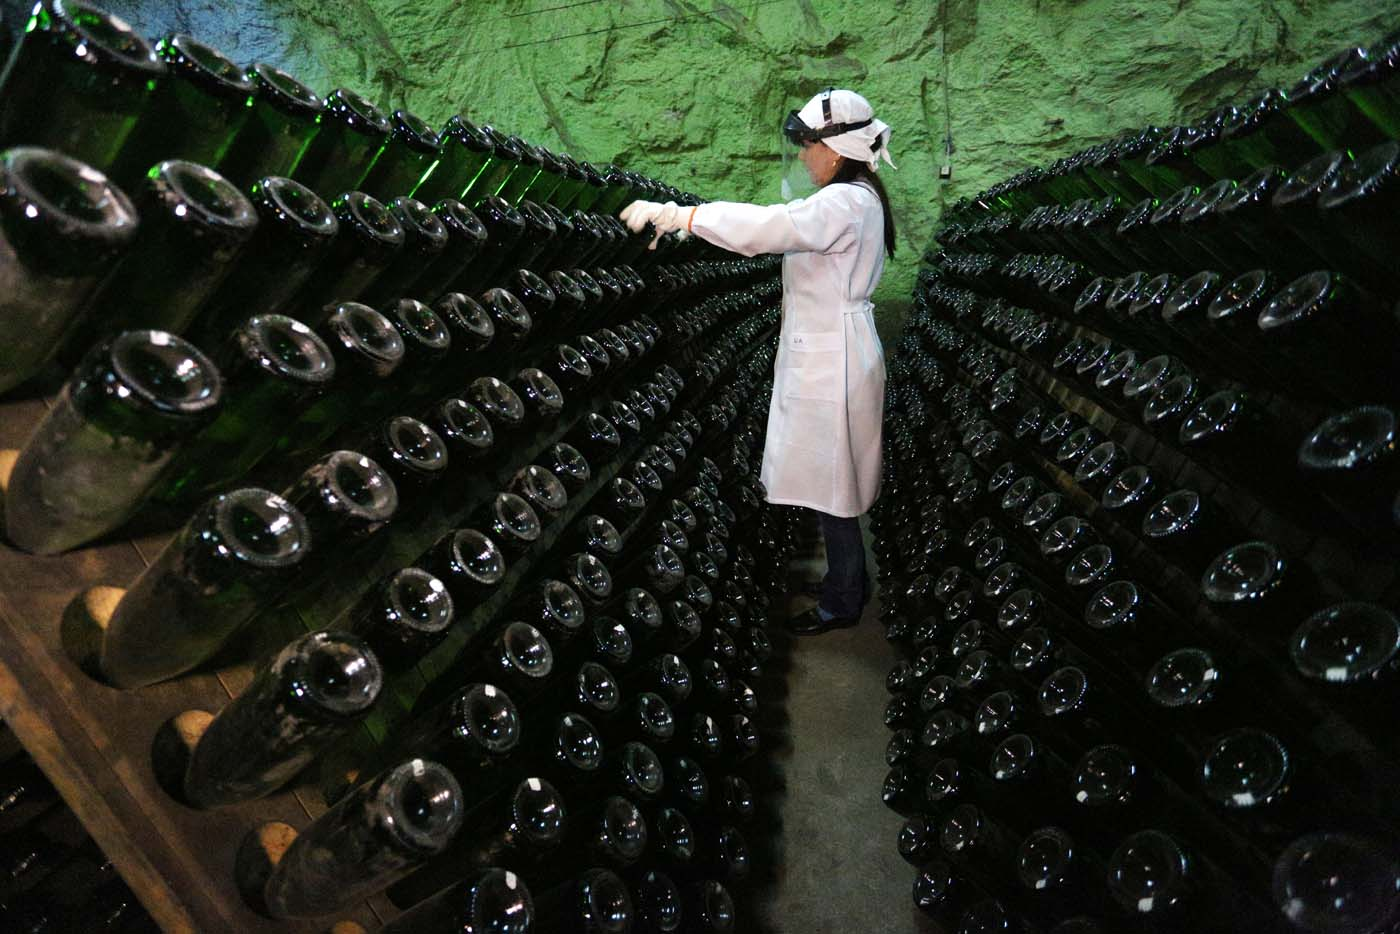 "An employee turns bottles in the ""Artwinery"" winery firm in the eastern Ukrainian city of Bakhmut on July 12, 2017. The winery is located in a government-held town just two dozen kilometres (15 miles) from the frontline in Ukraine's low-level war, where the army and Russian-backed rebels continue to lob deadly artillery barrages at each other. The town spent around a month under rebel control in 2014, and in 2015 the frontline was so close that the town came under rebel shelling. But despite more than three years of fighting that has claimed some 10,000 lives, Nasyrov's employer, Artwinery, has never stopped production. / AFP PHOTO / Aleksey FILIPPOV"